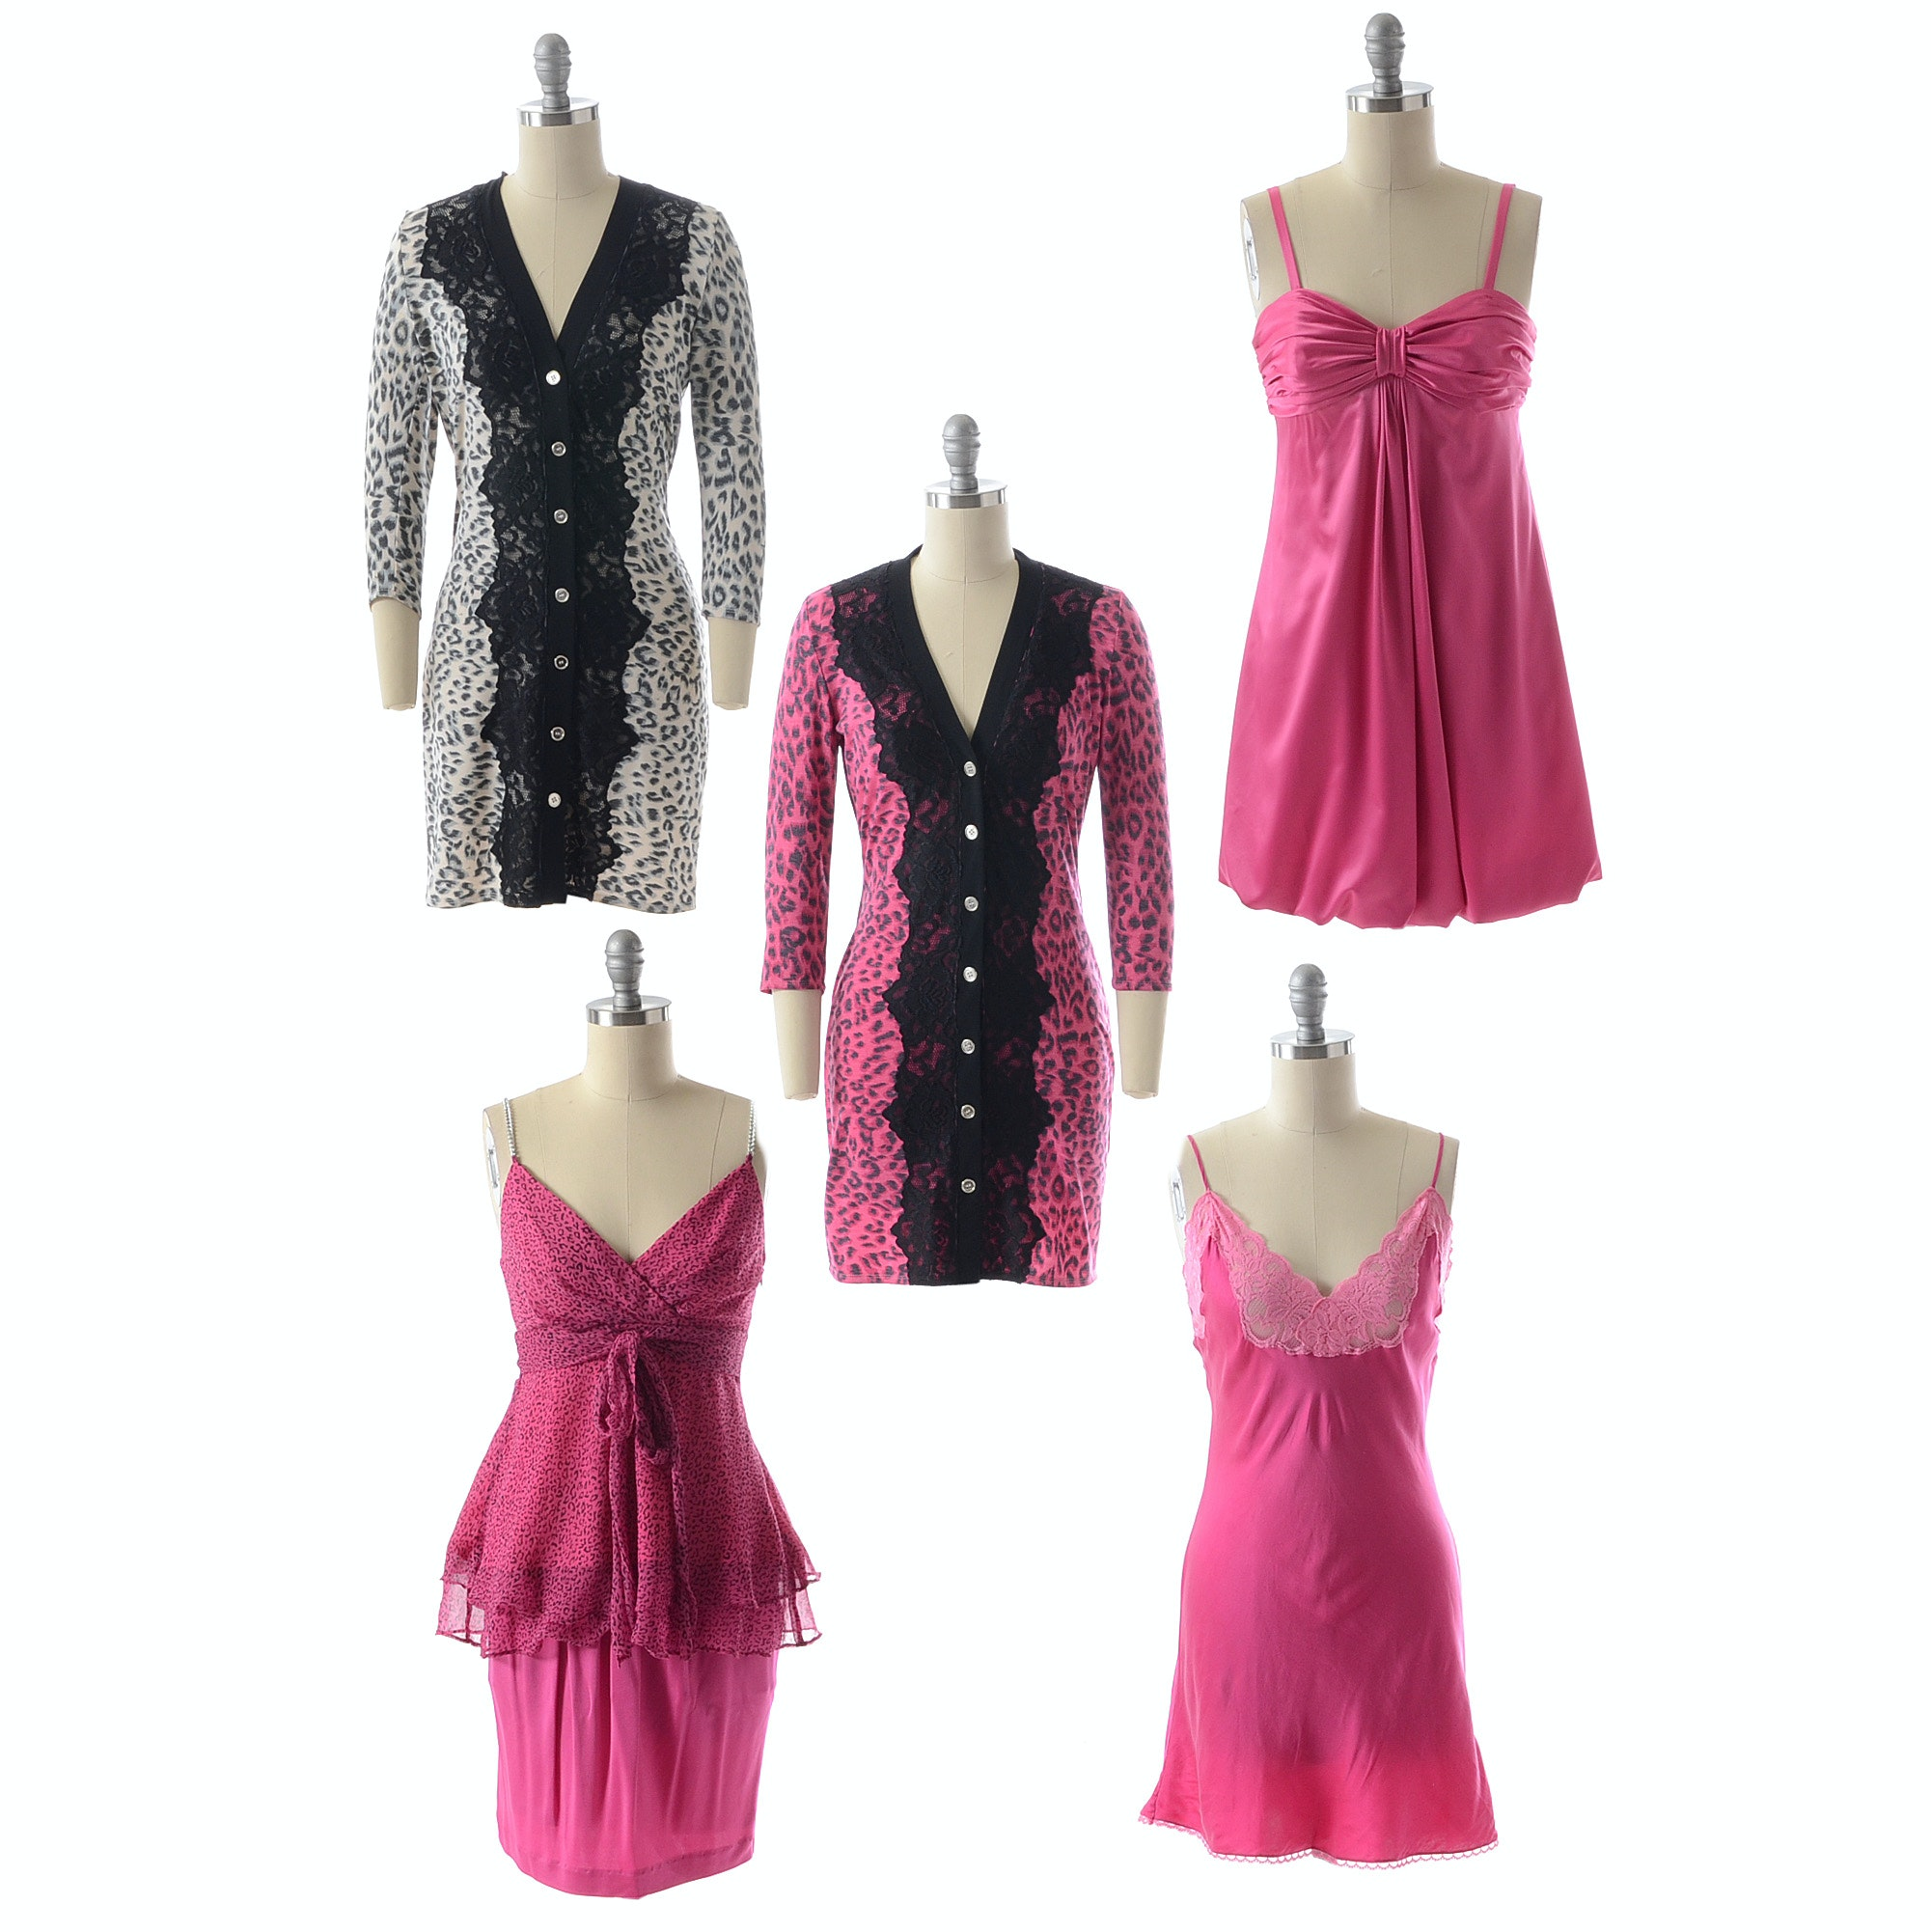 Assortment of Susan Lucci Brand Clothing